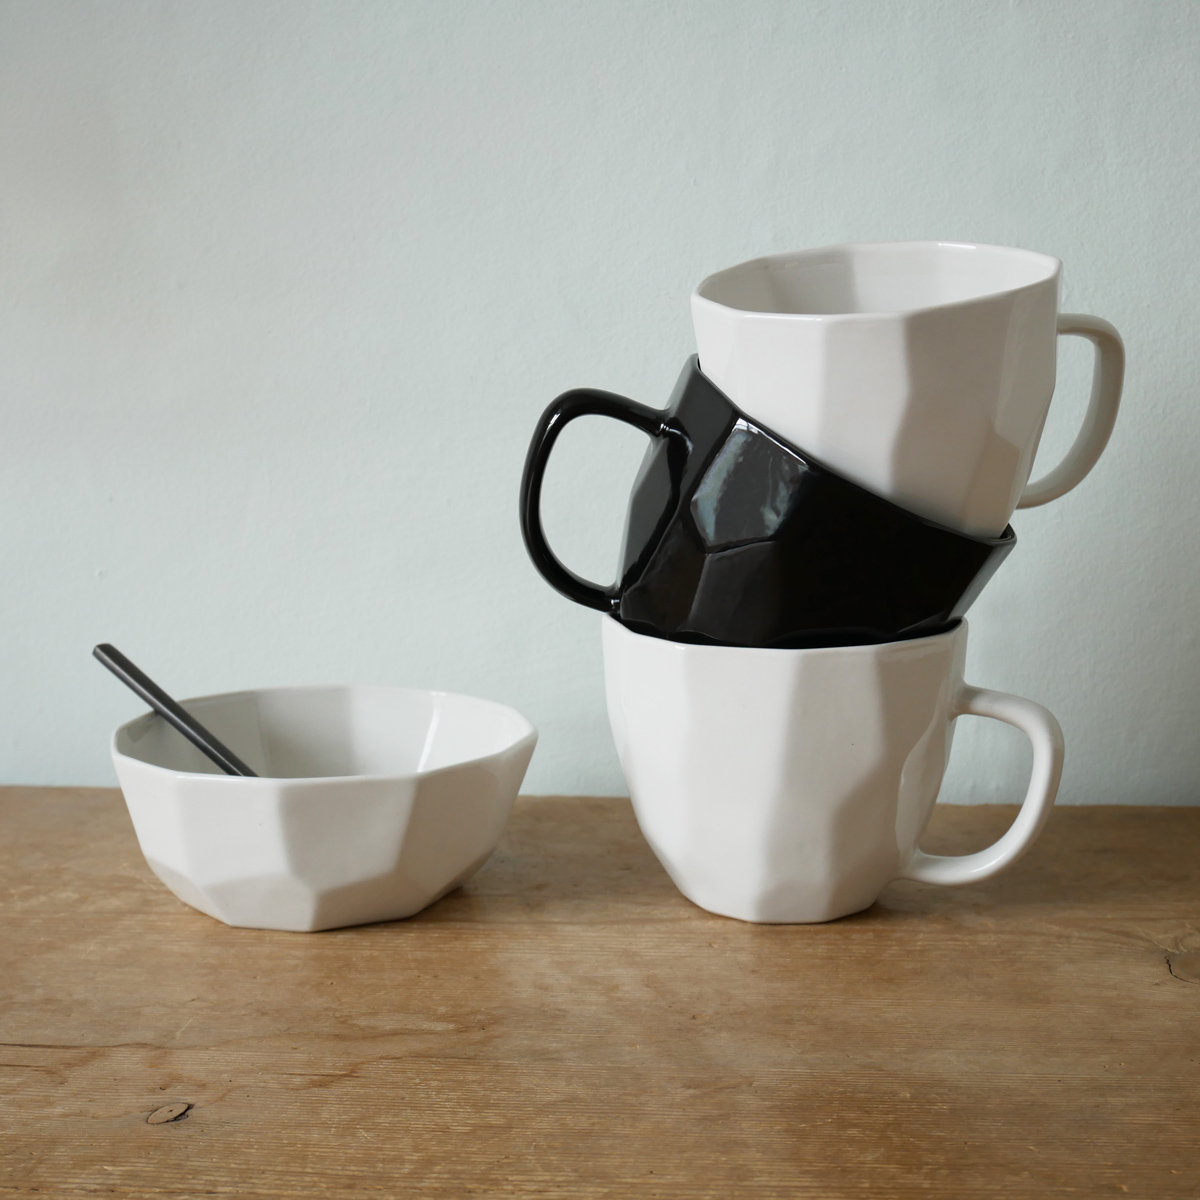 liv-interior-geometric-bowl-with-mug-stack-white-&-black